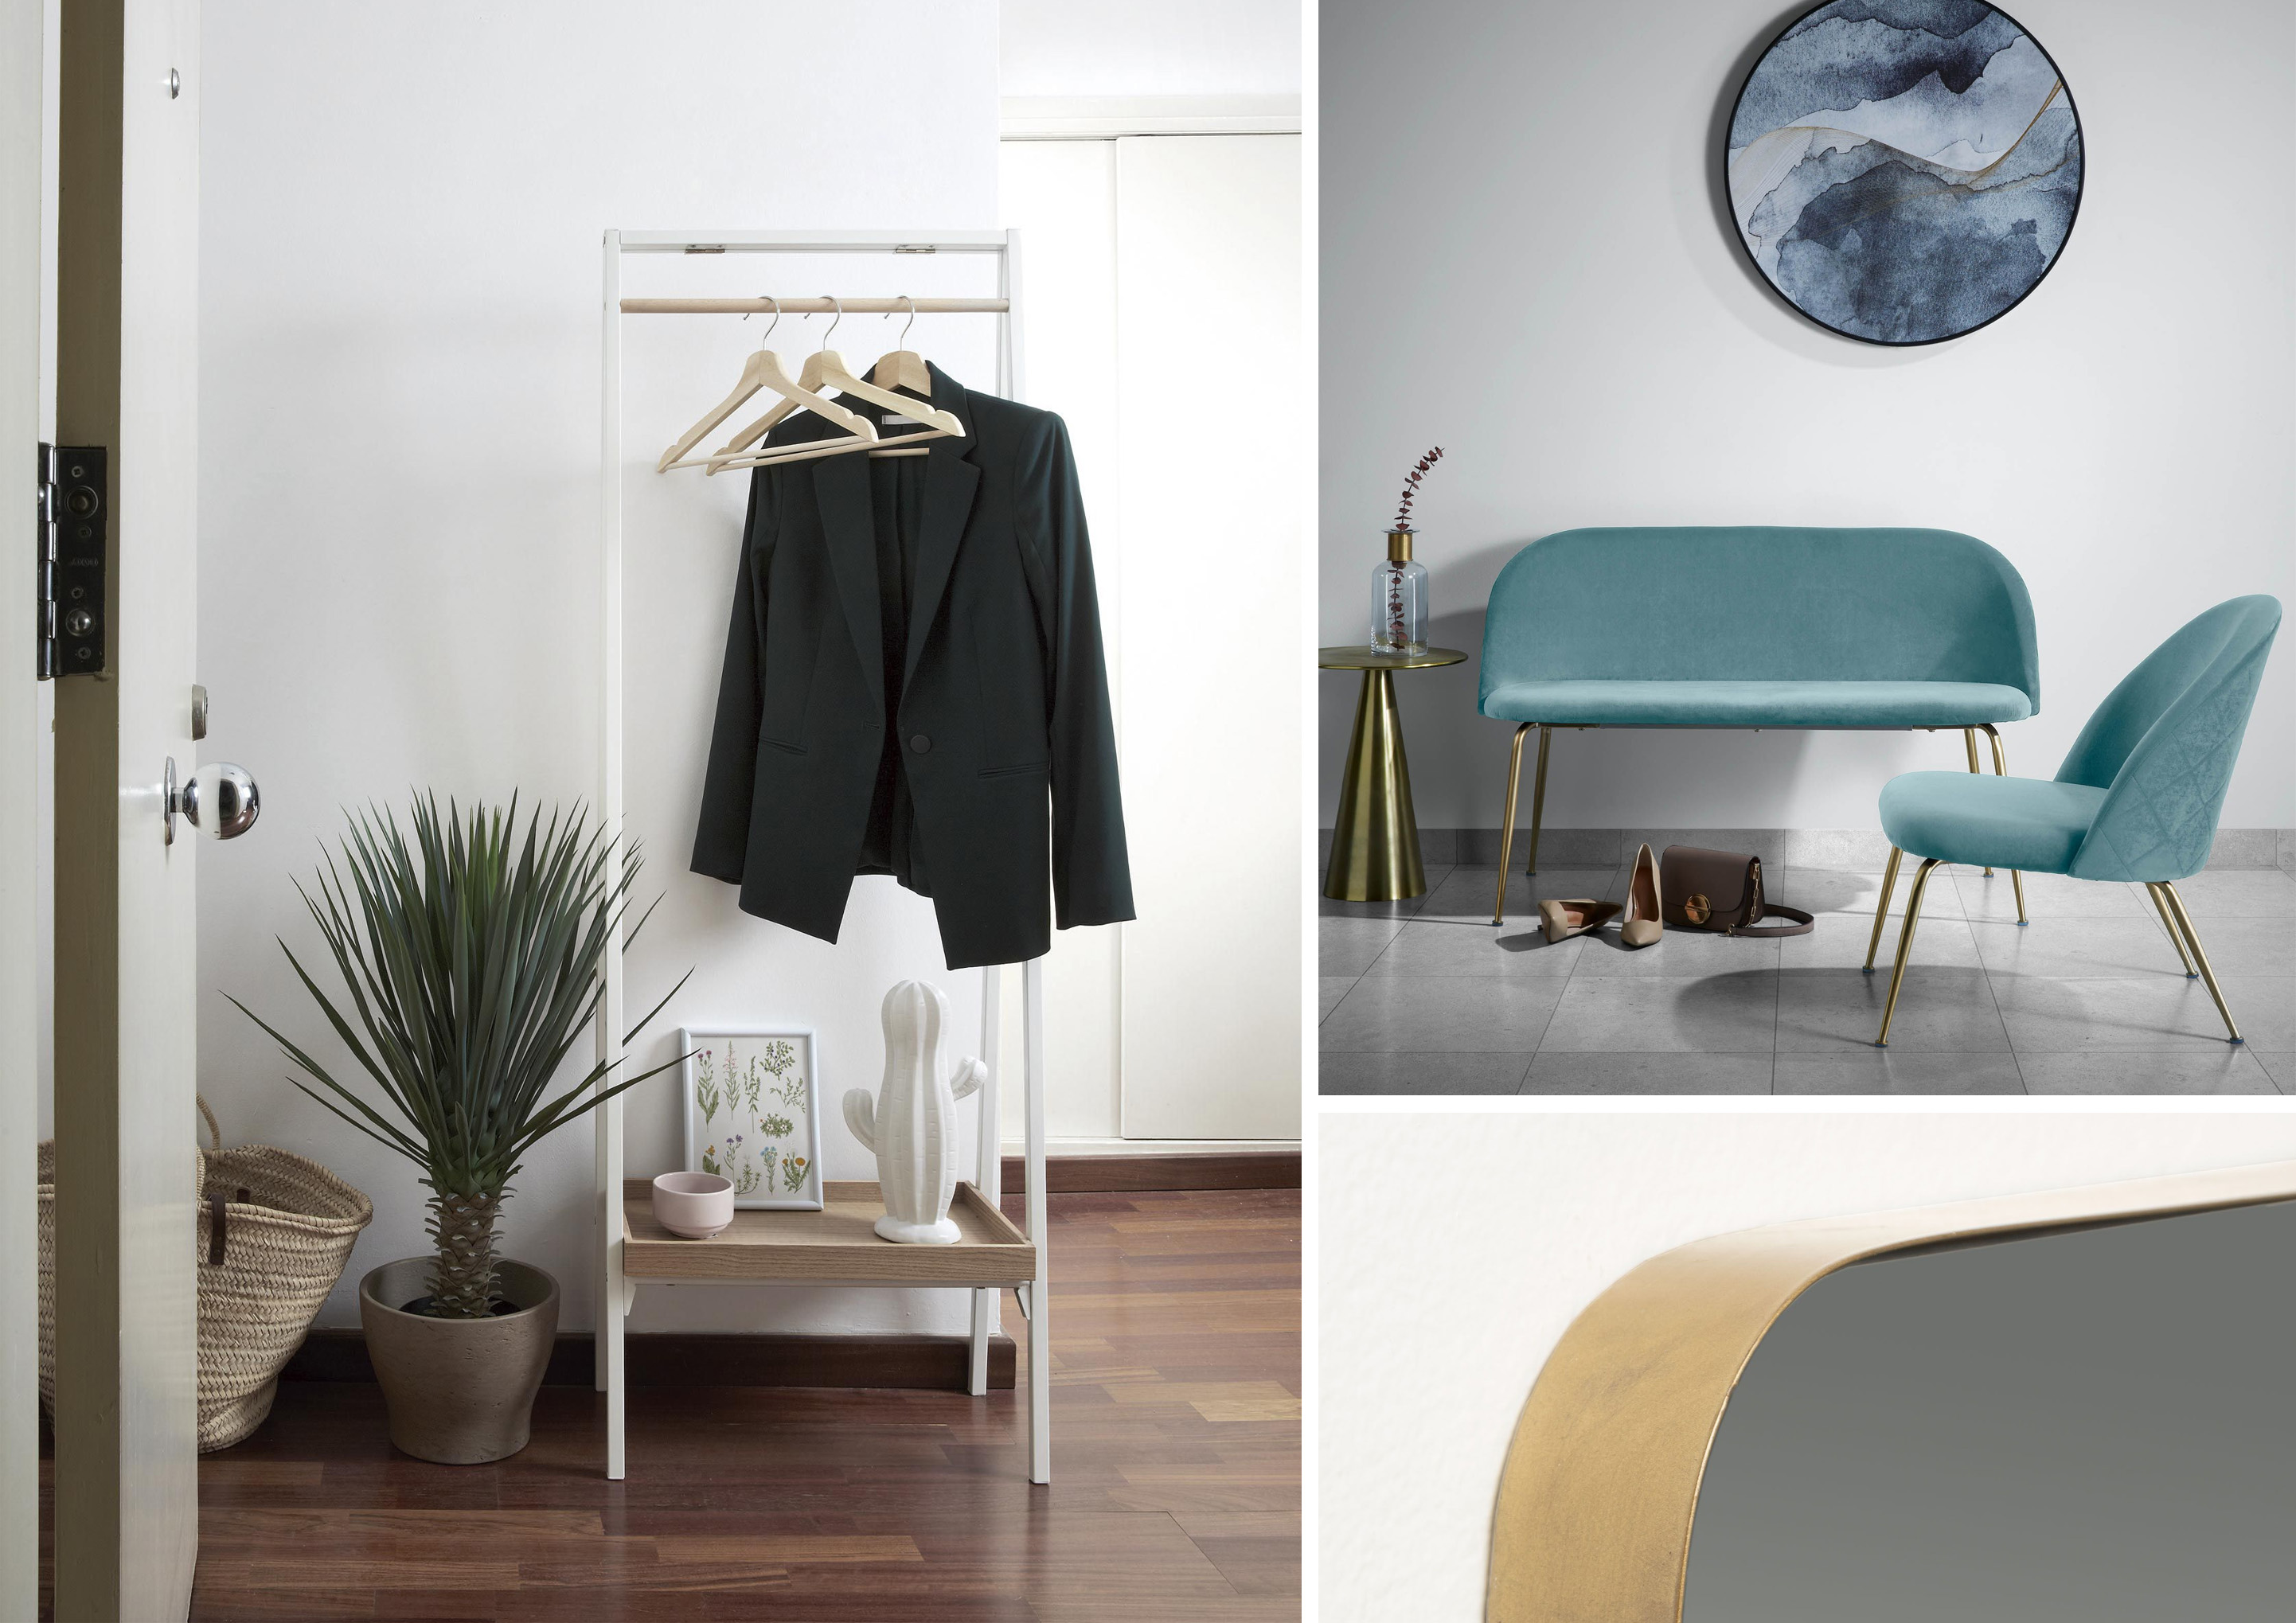 Kave Home complementi d'arredo